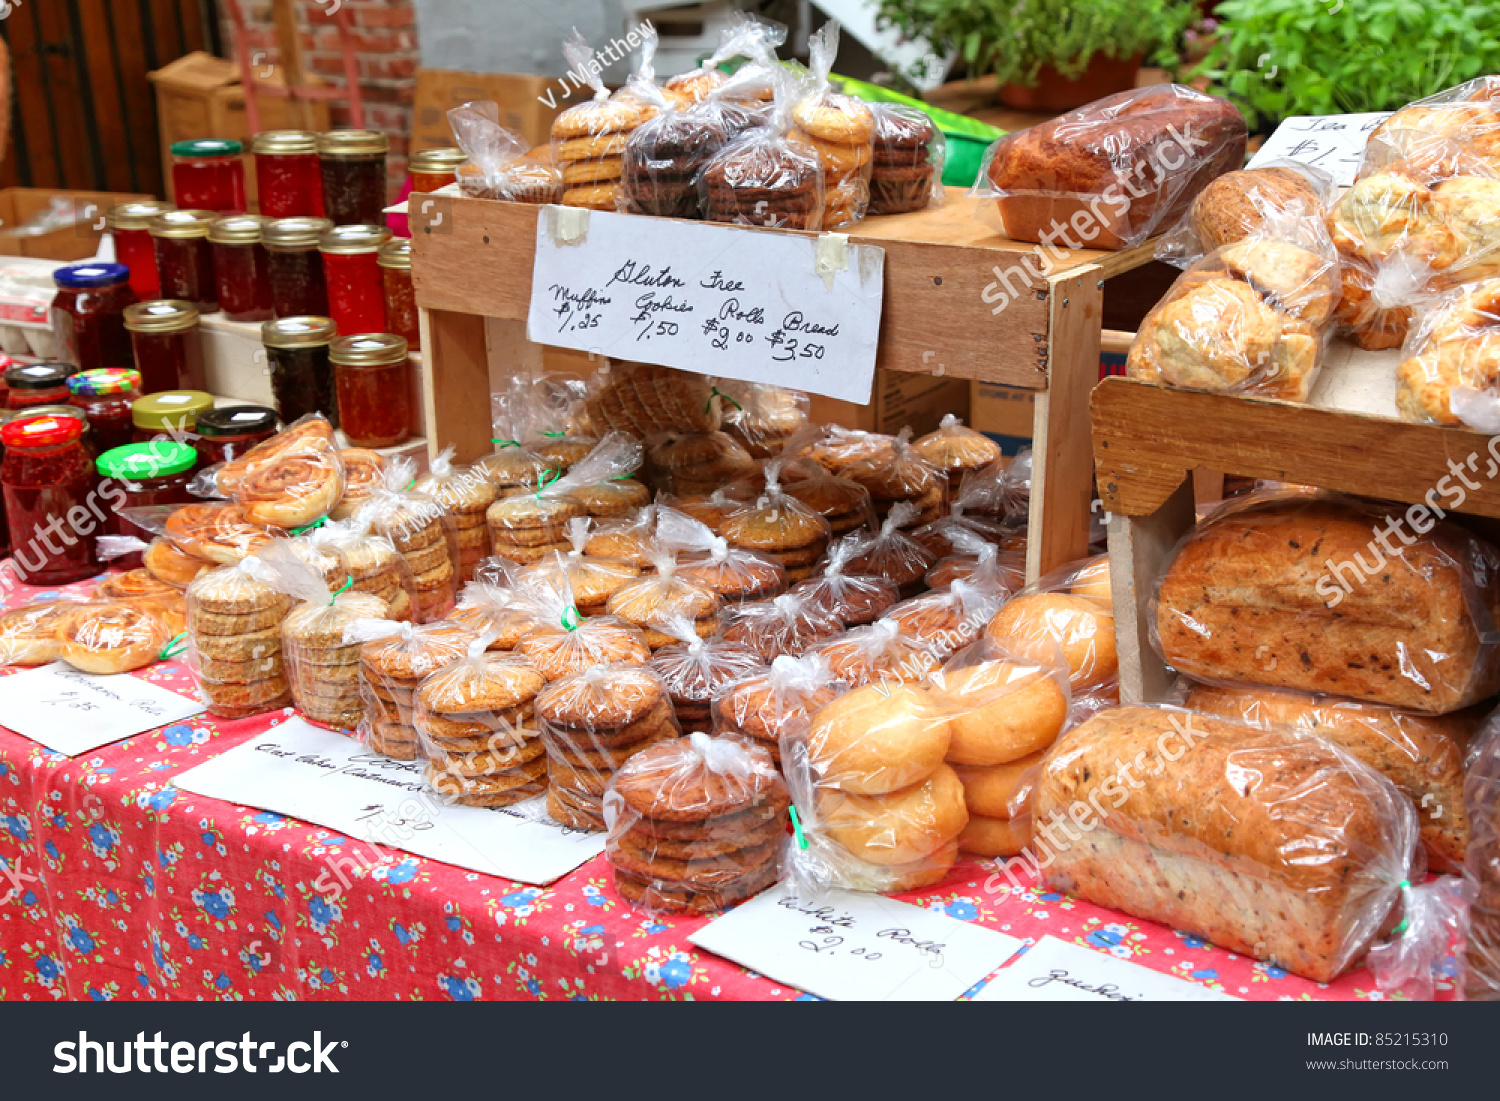 Price Of Homemade Baked Goods 94